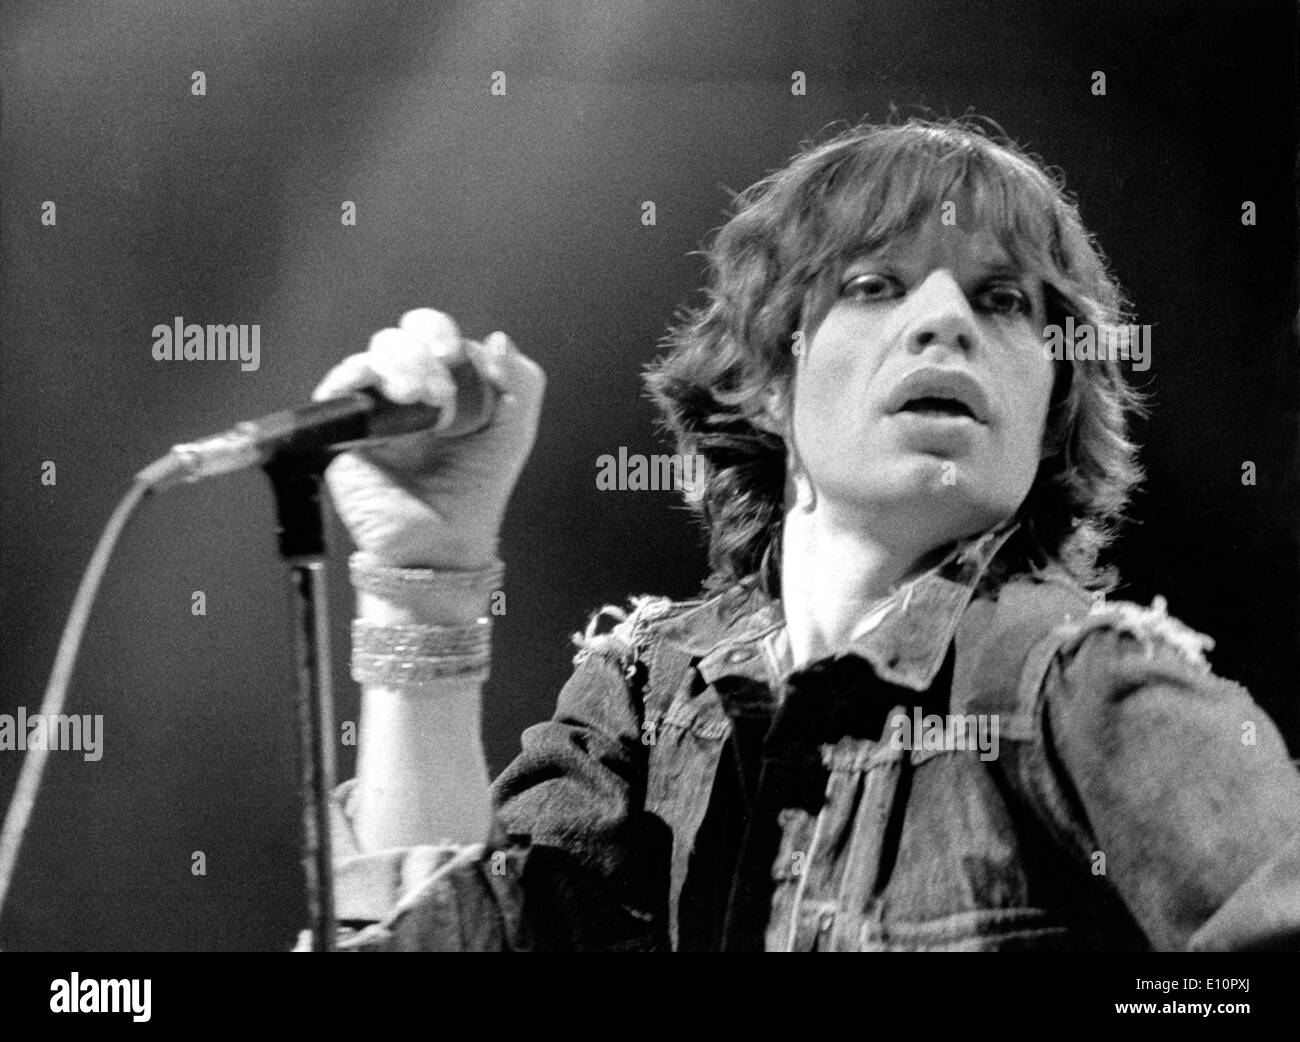 Rolling Stones singer Mick Jagger performs in Munich - Stock Image